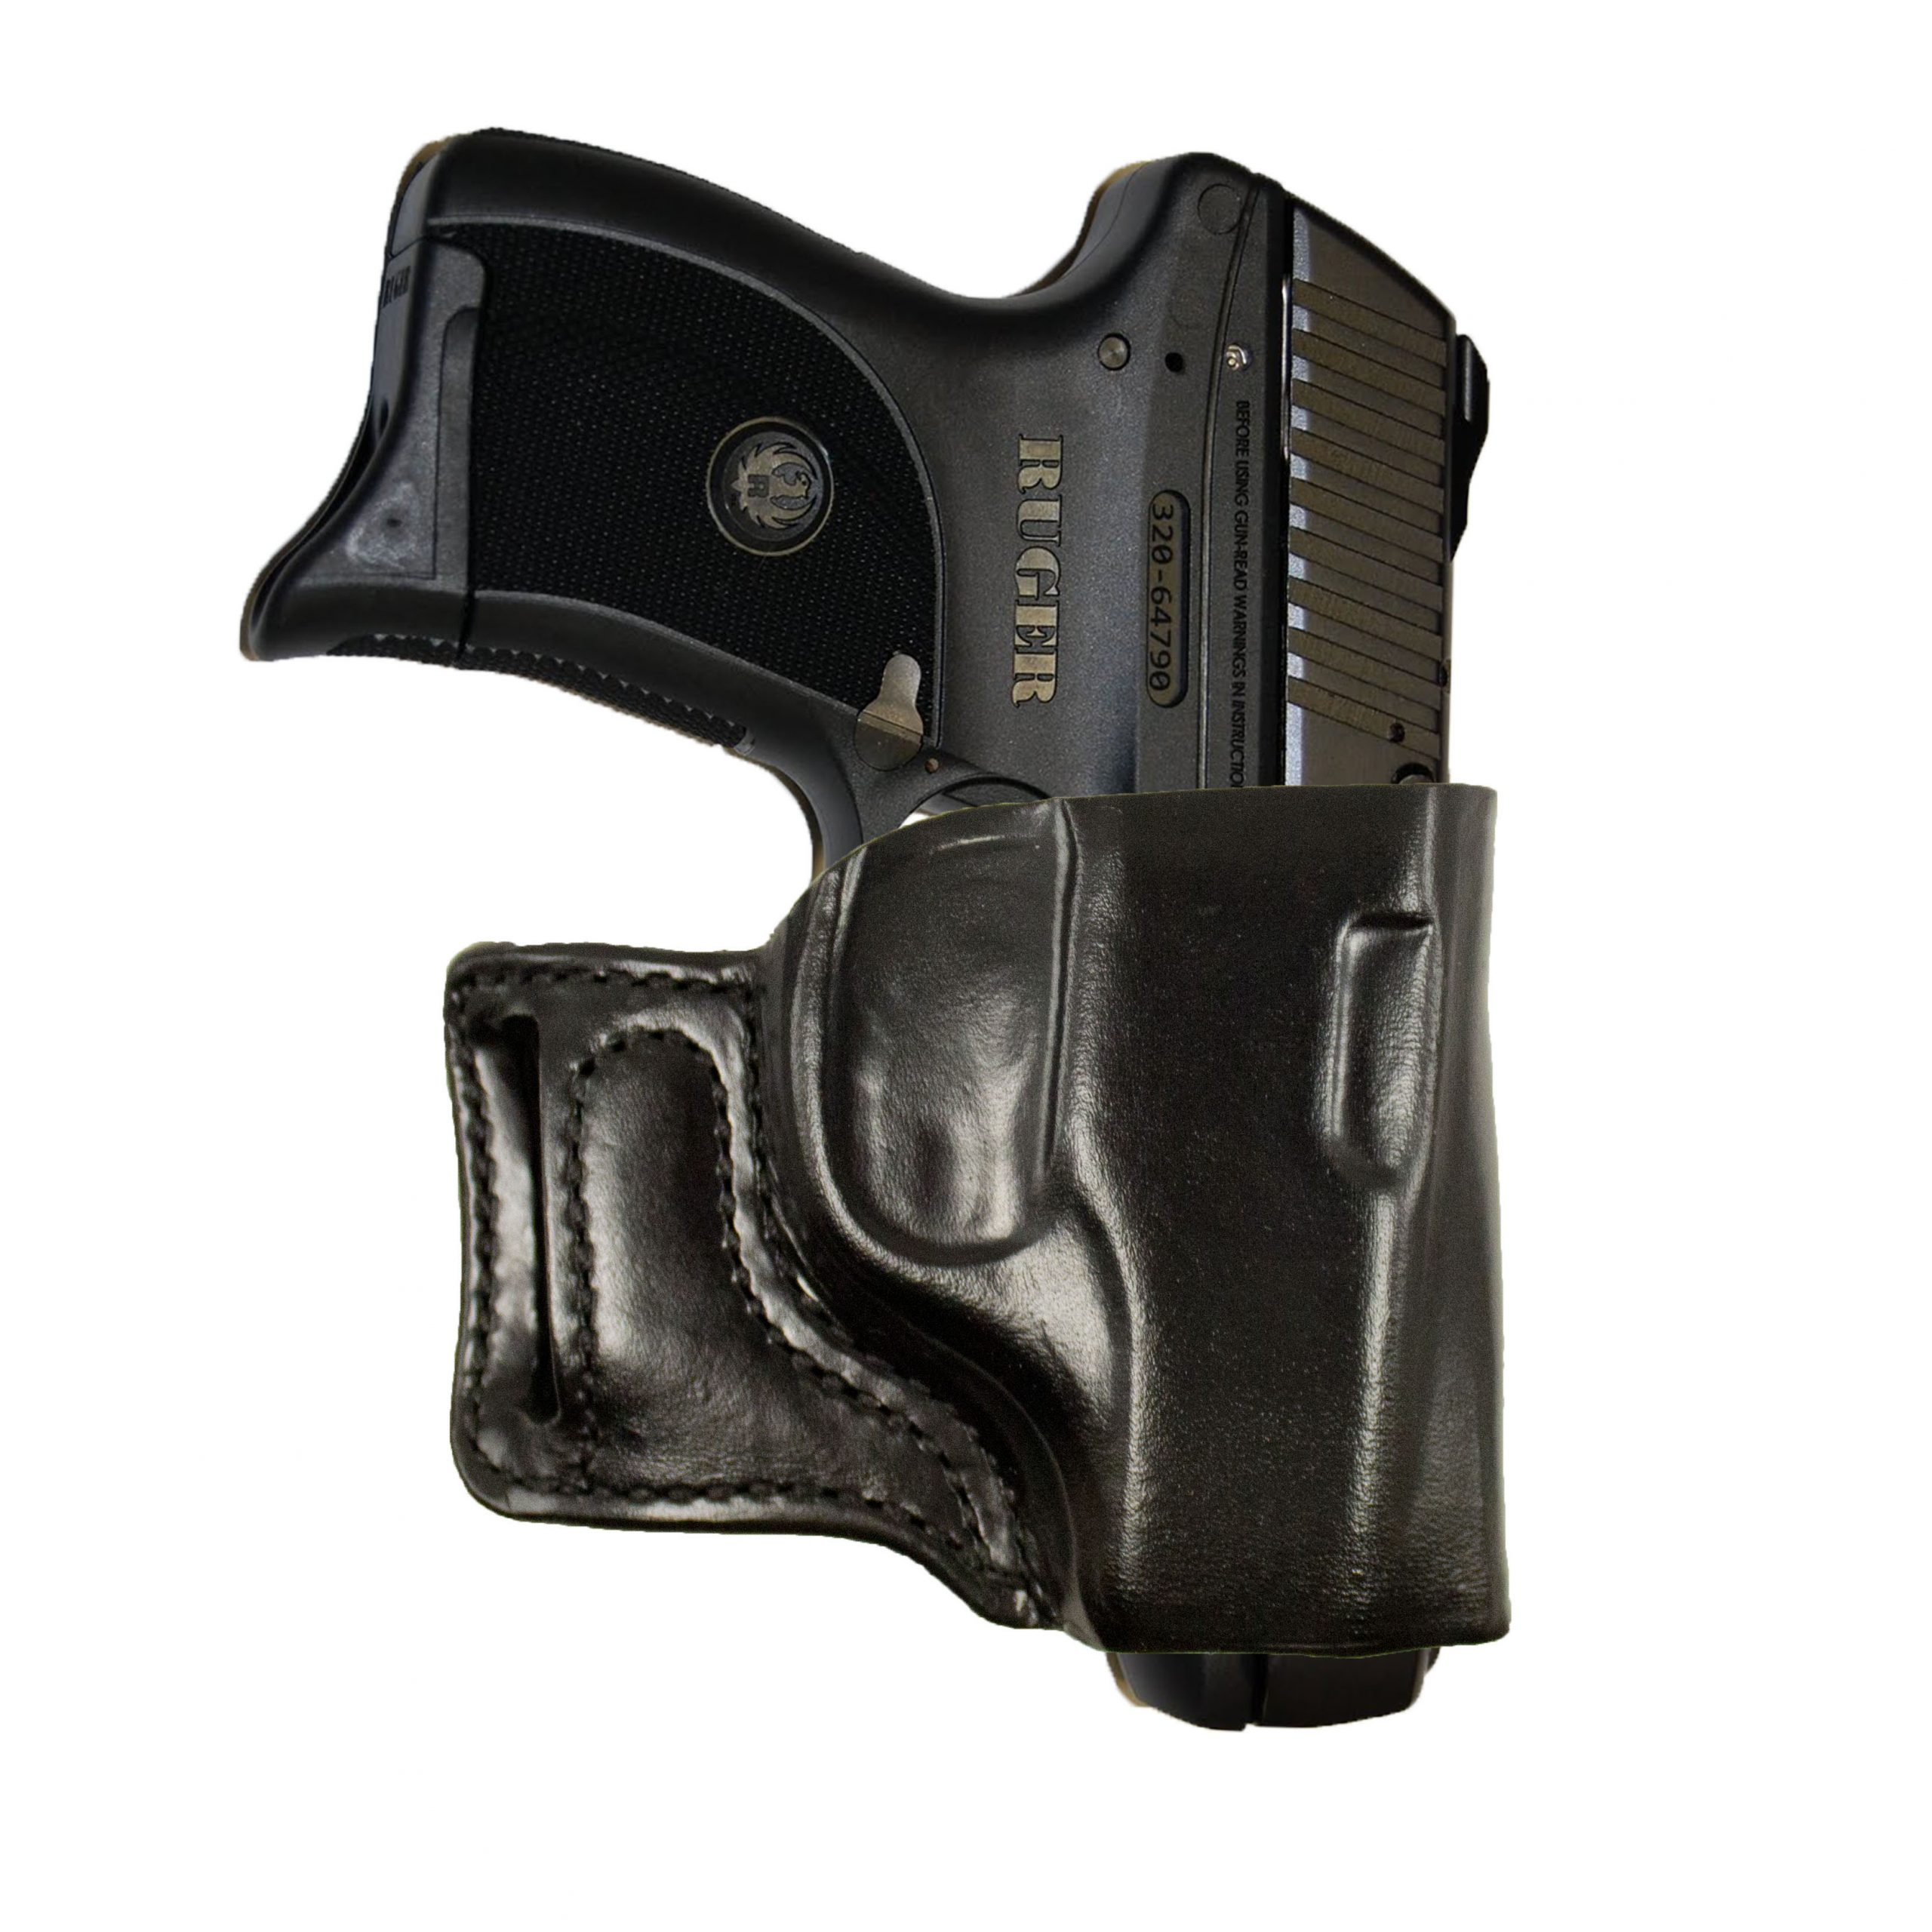 DESANTIS-E-GAT-SLIDE-HOLSTER-RIGHT-BLACK-115BAV5Z0-RUGER-LCP_11520V5.jpg